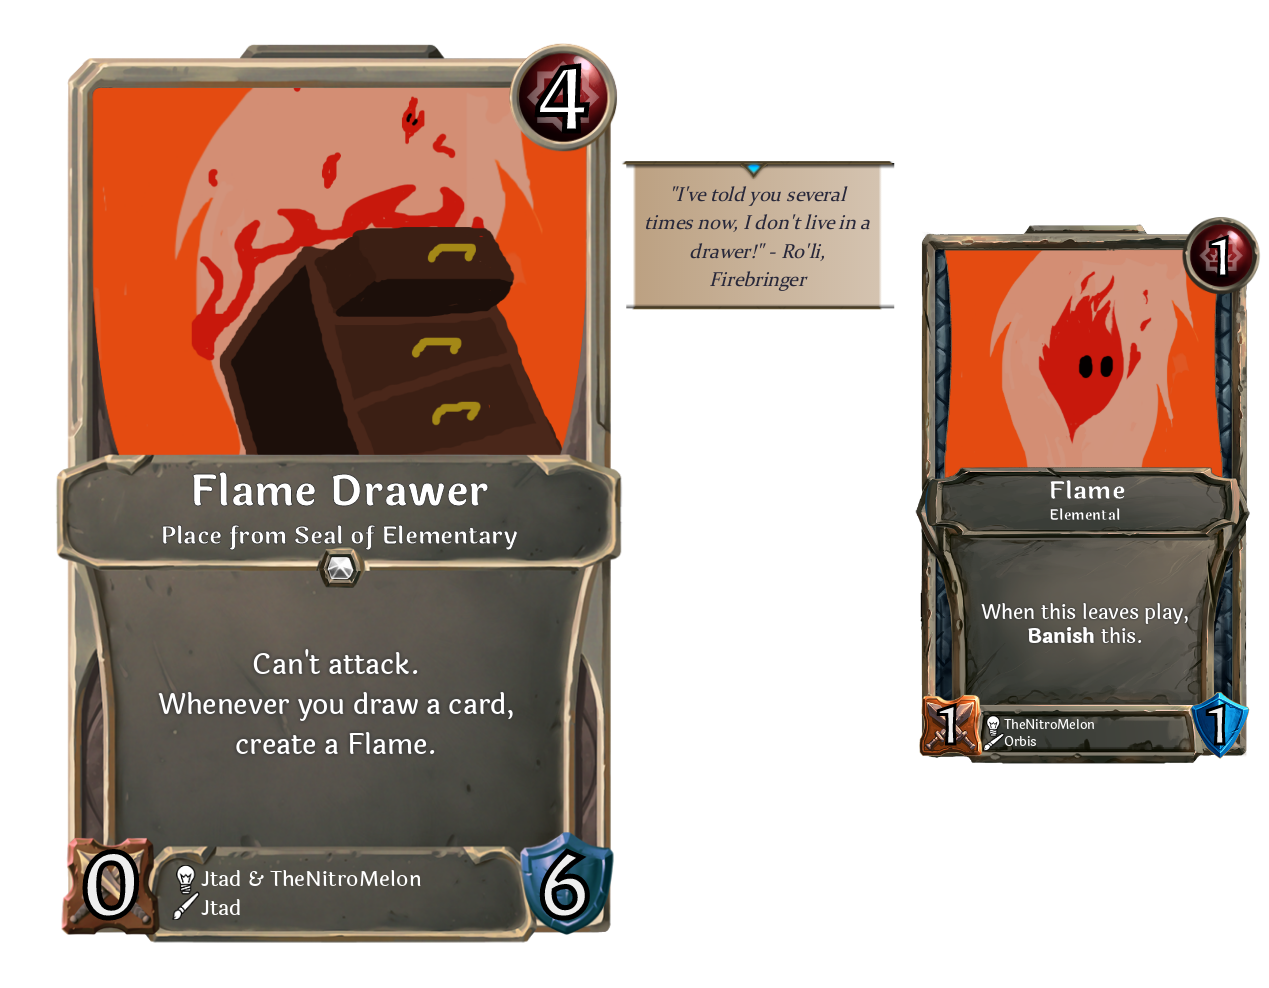 Flame Drawer